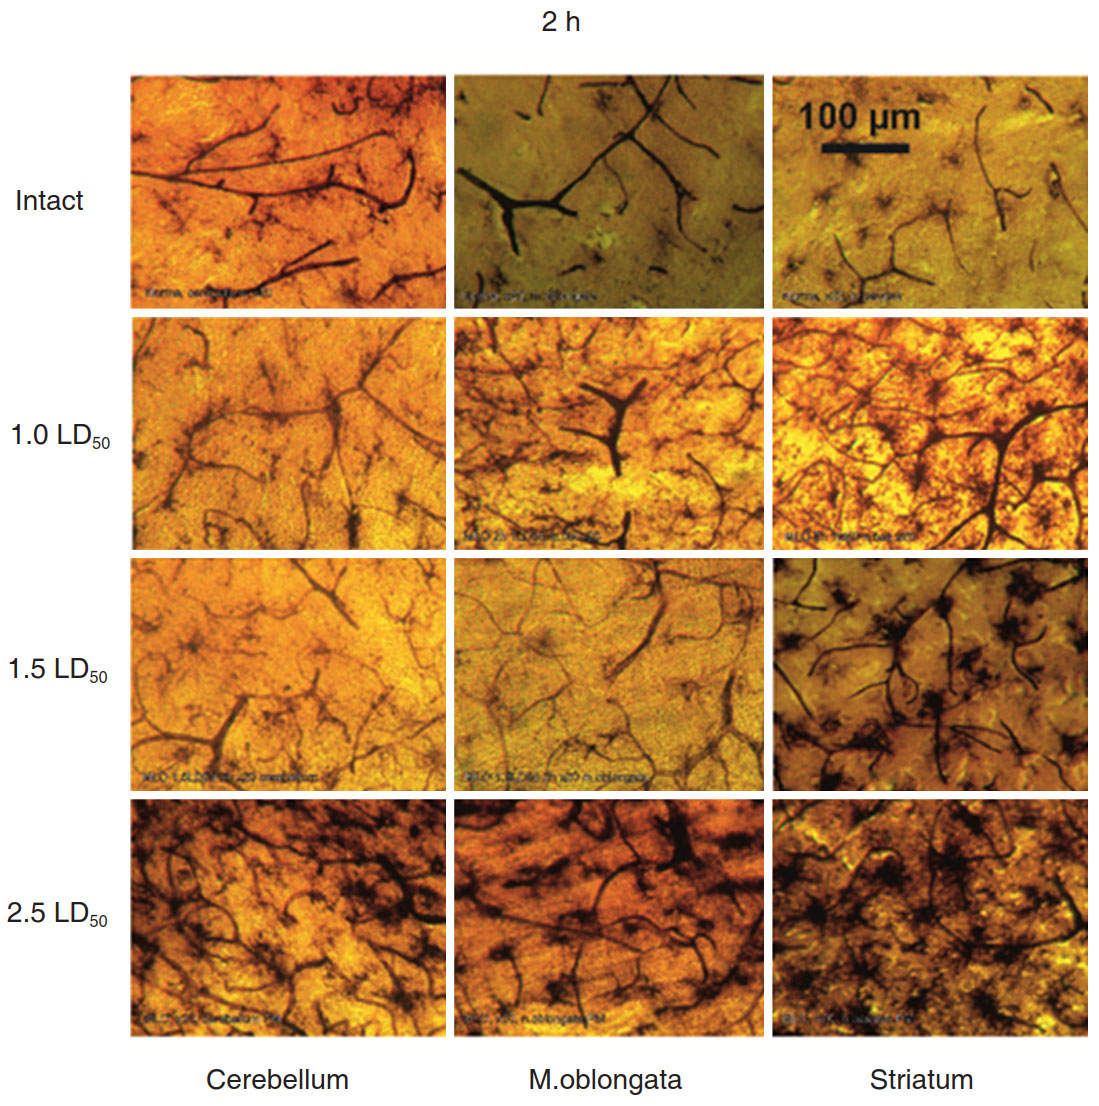 Changes In Microglia Activity Of Rat Brain Induced By